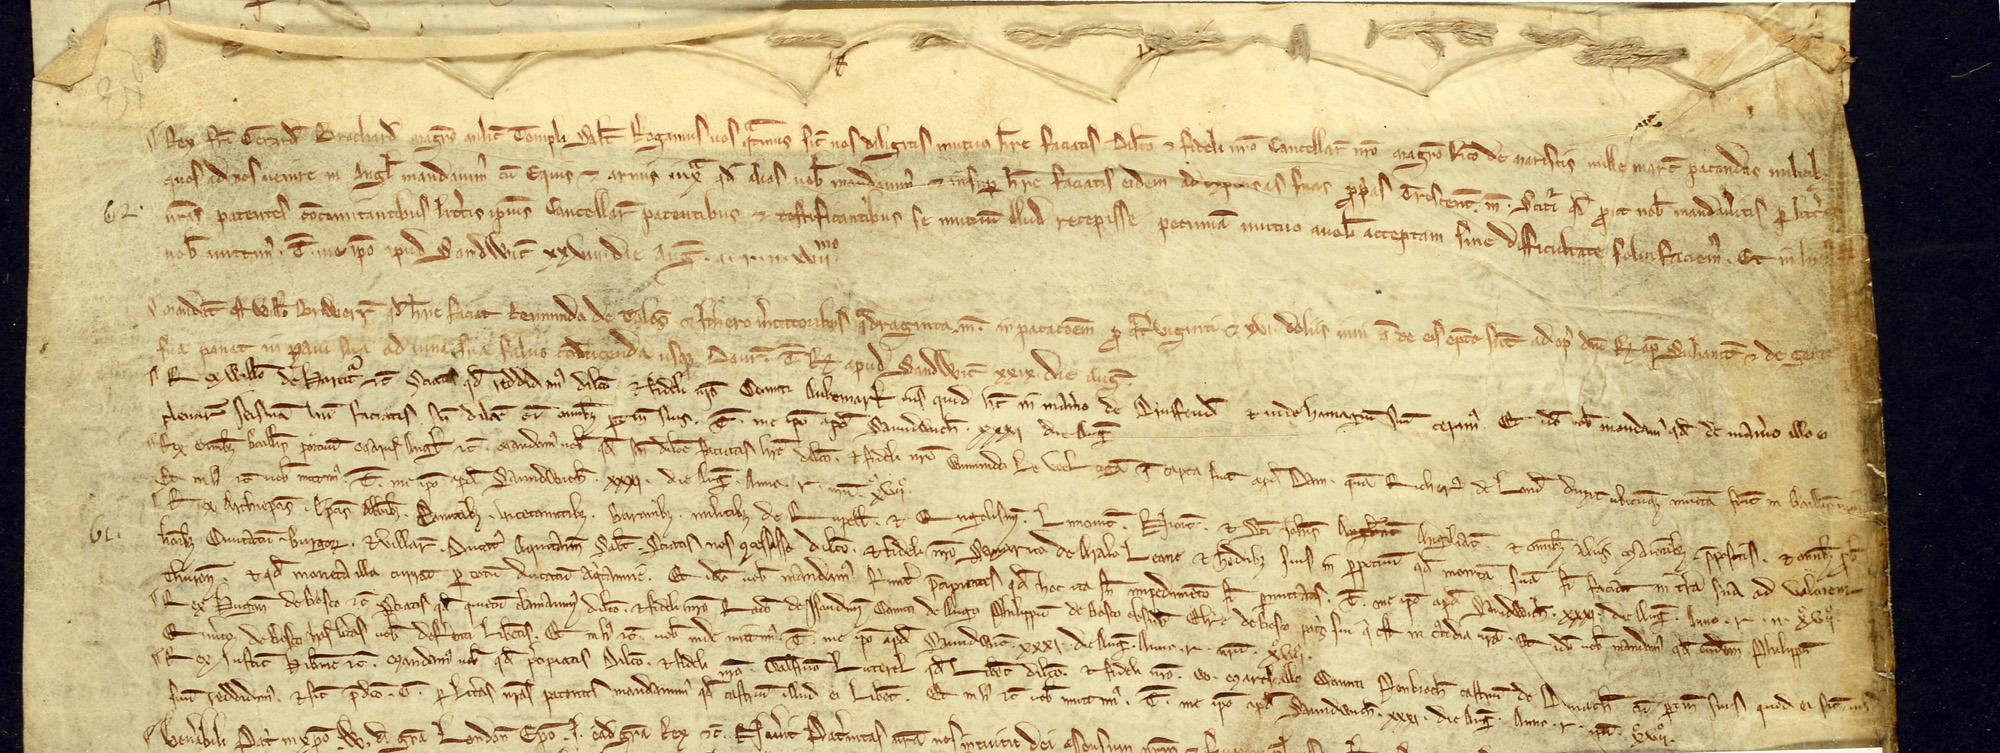 Study extract 2 from letters and grants of King John 1215